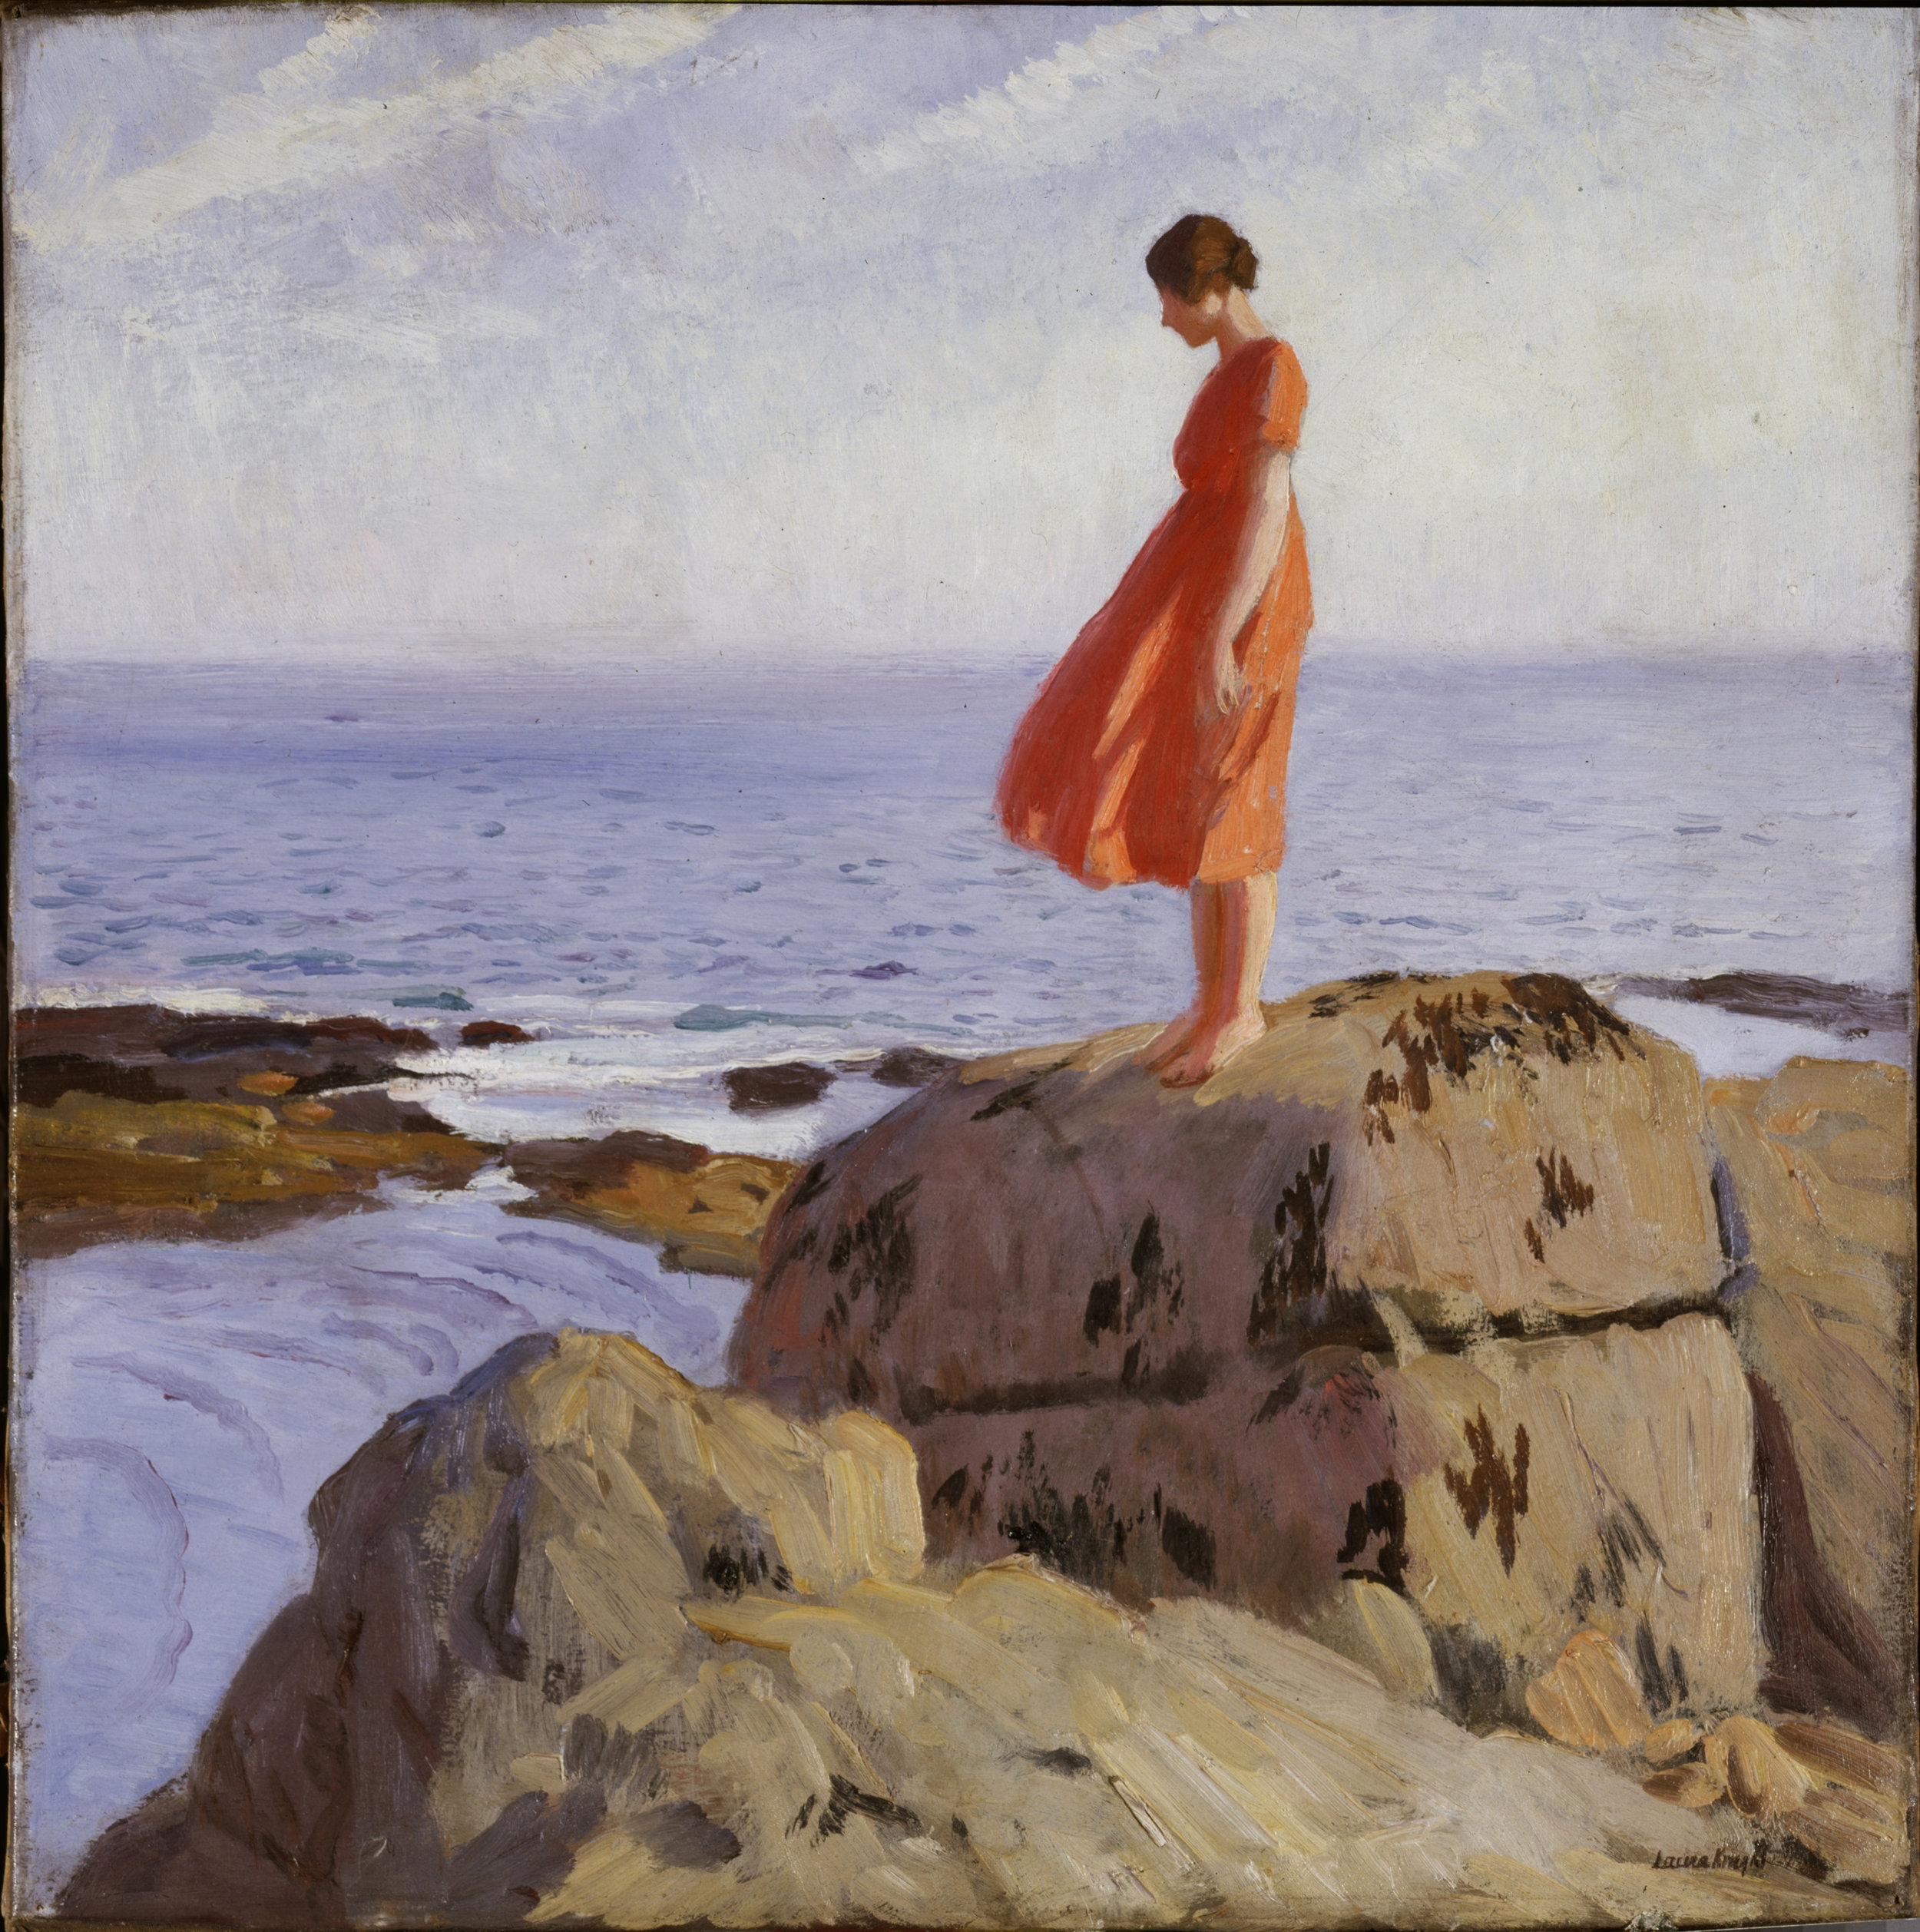 Laura Knight 'Dark Pool' courtesy of the Laing Gallery